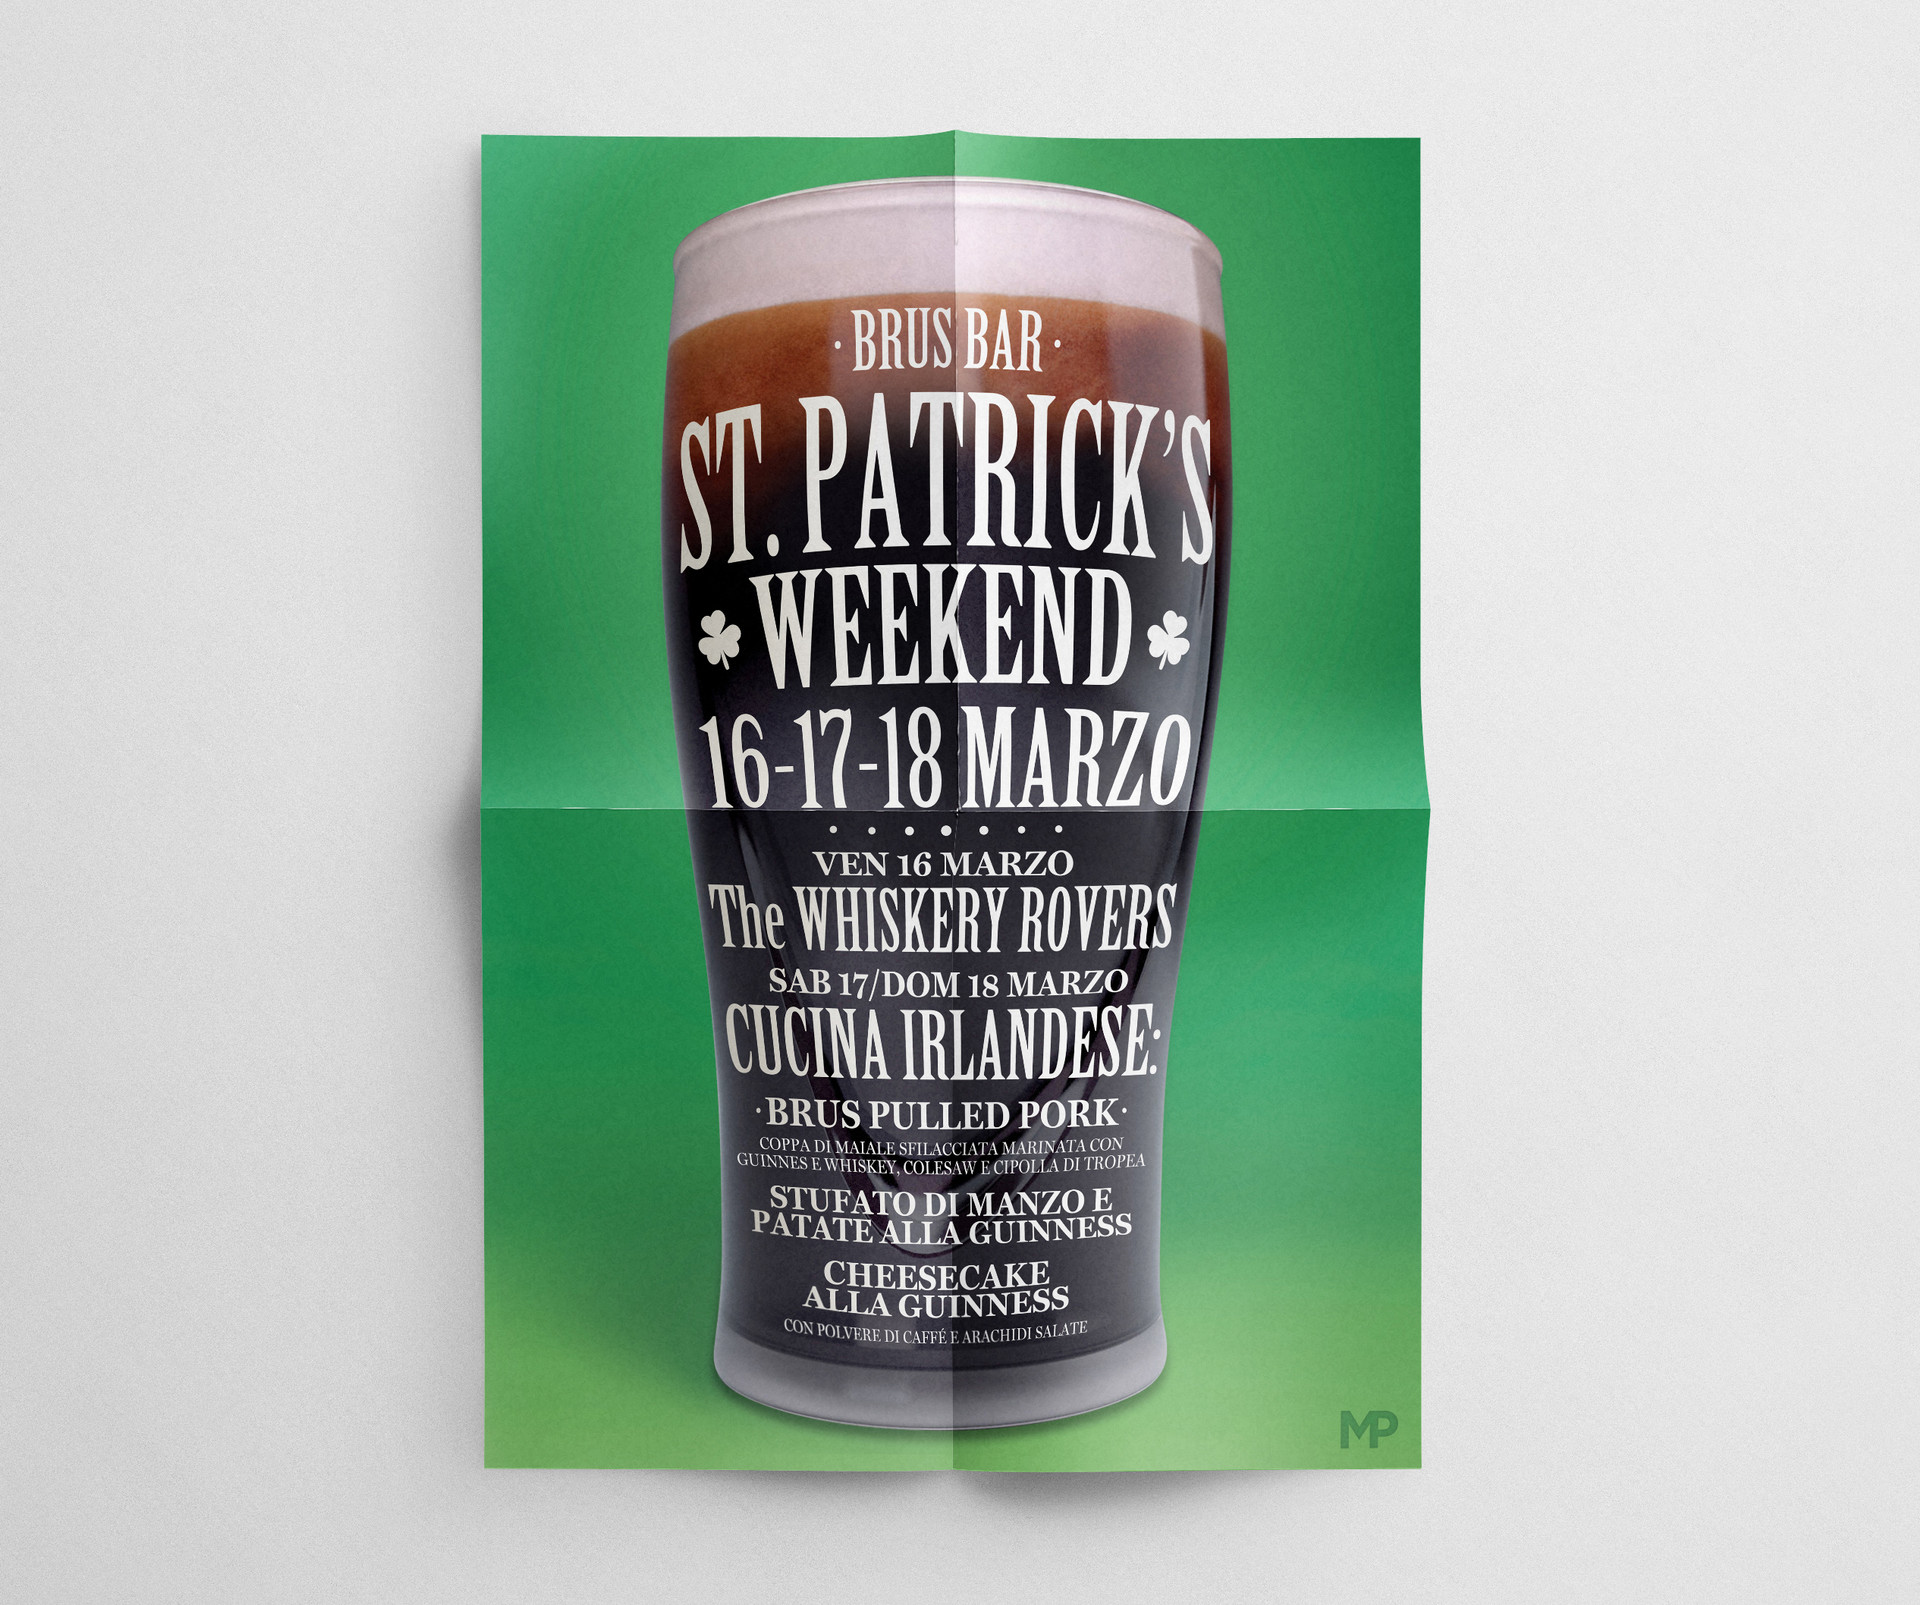 St Patrick's Weekend 2018 - MP Grafica